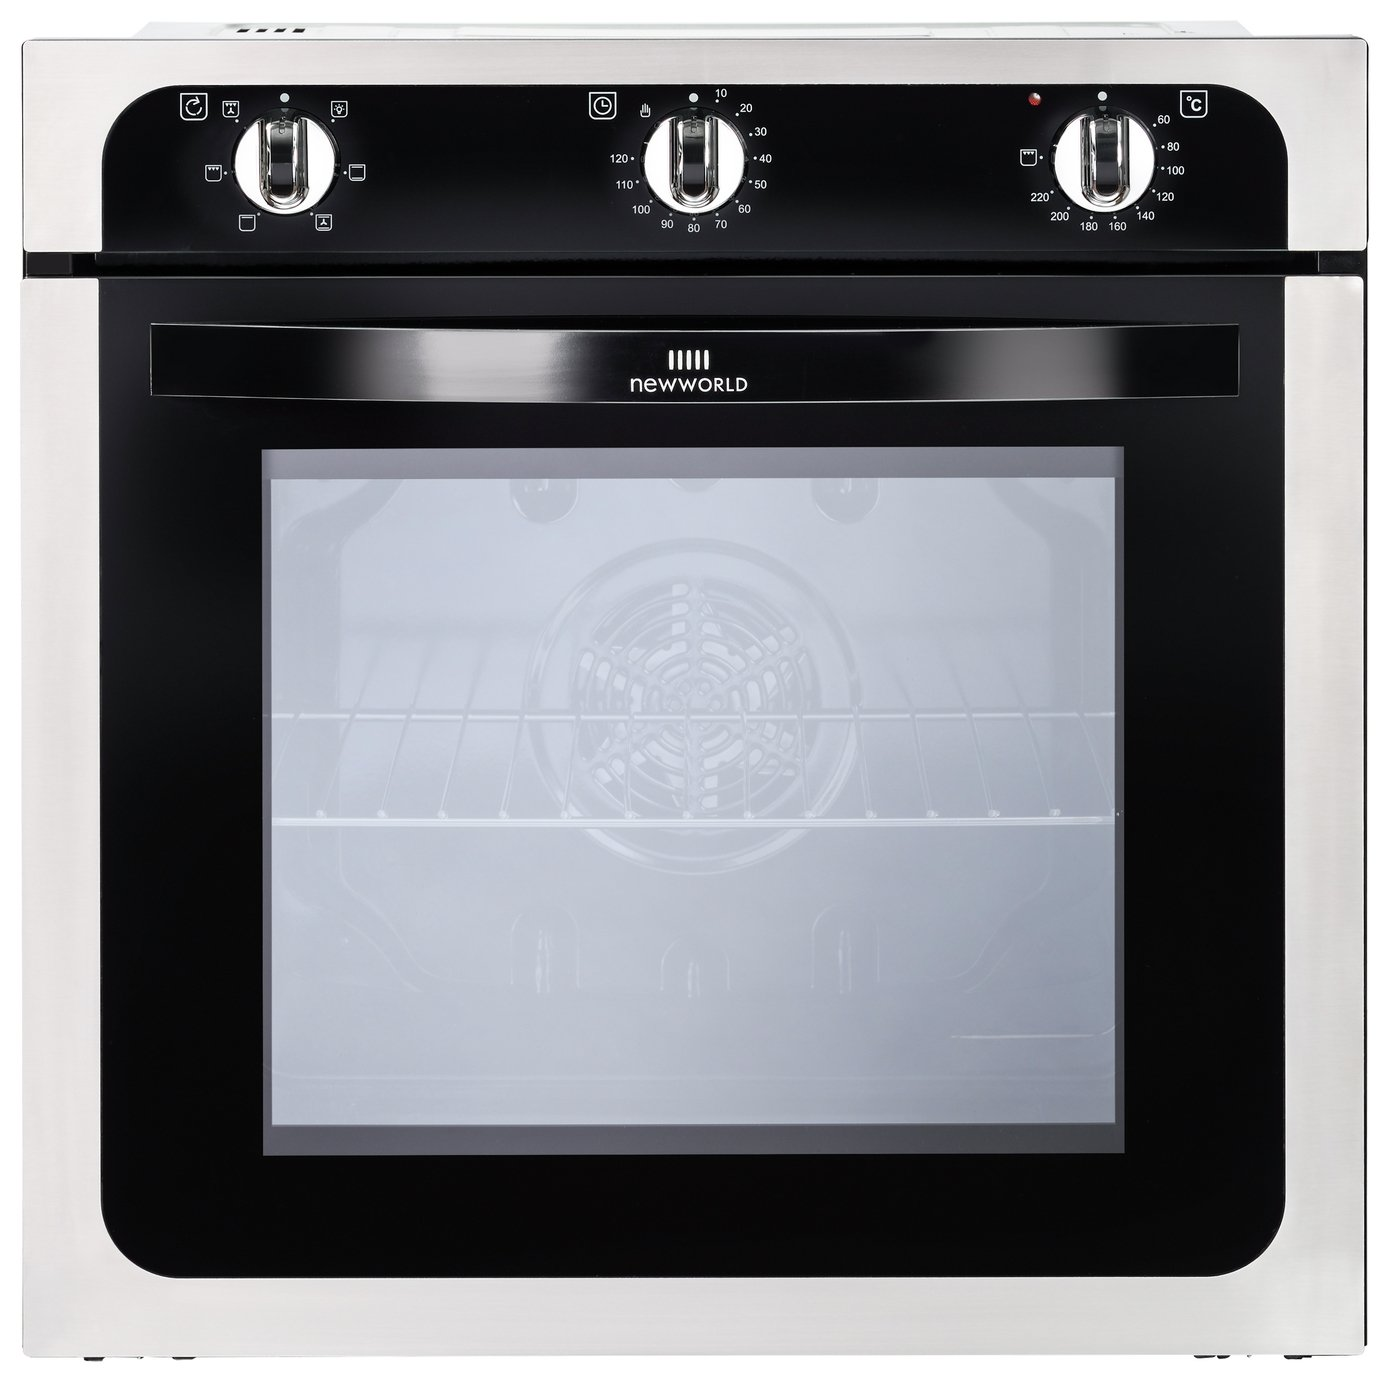 New World NW602F Built-in Single Oven - Stainless Steel.